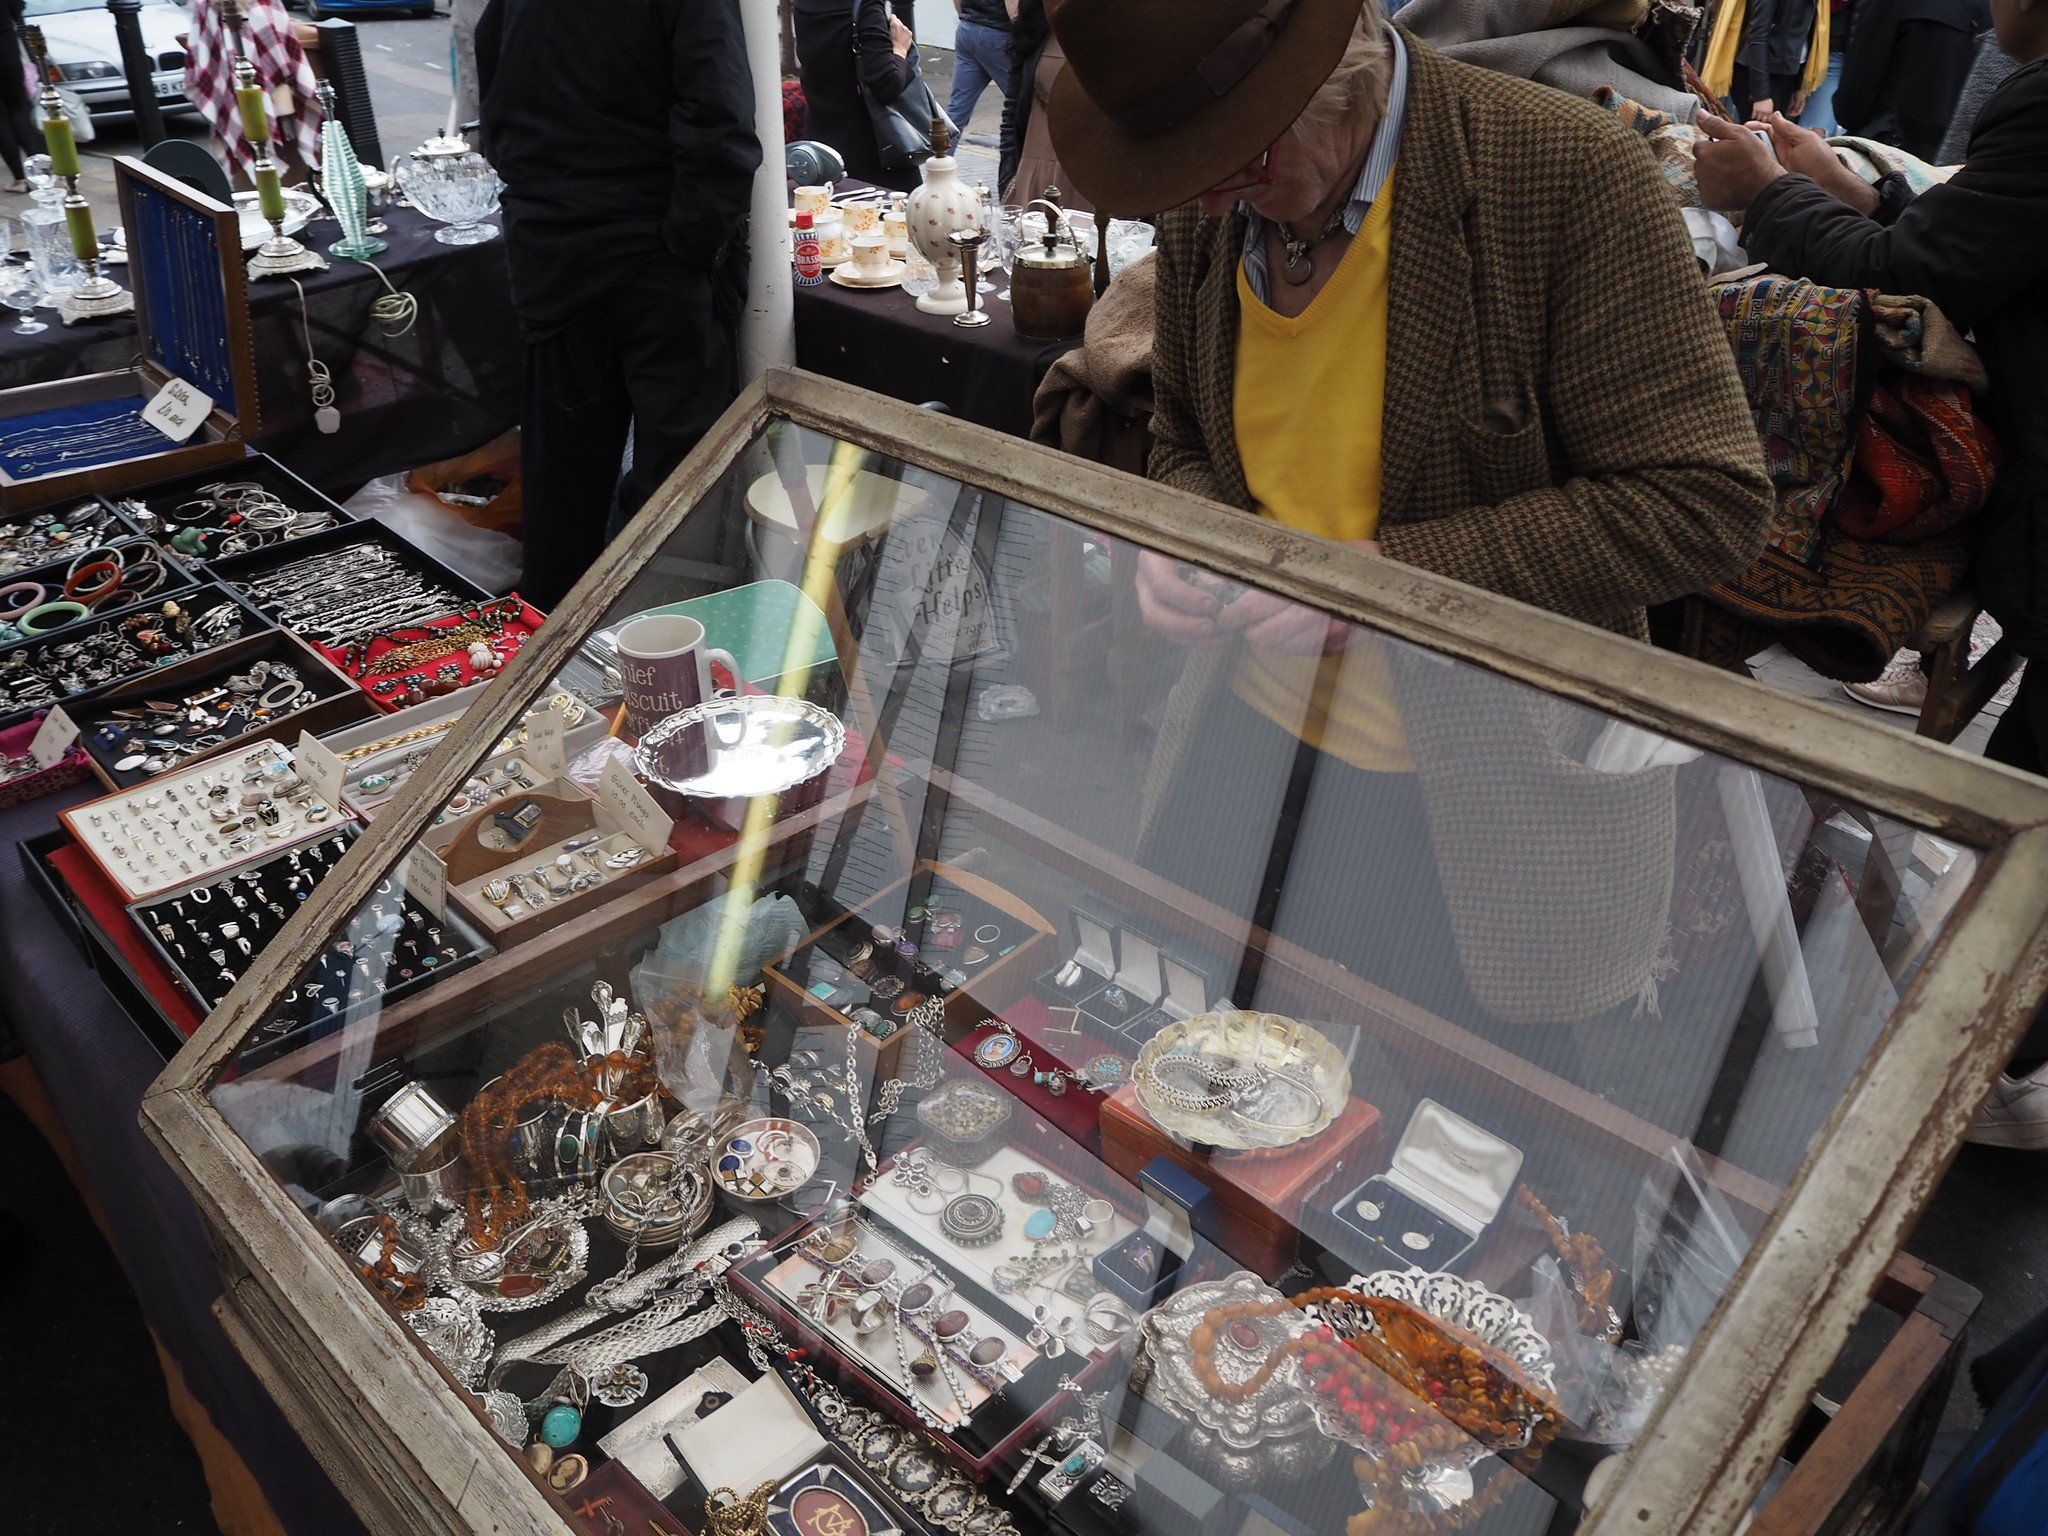 Camden Passage Market Trader selling antique jewellery